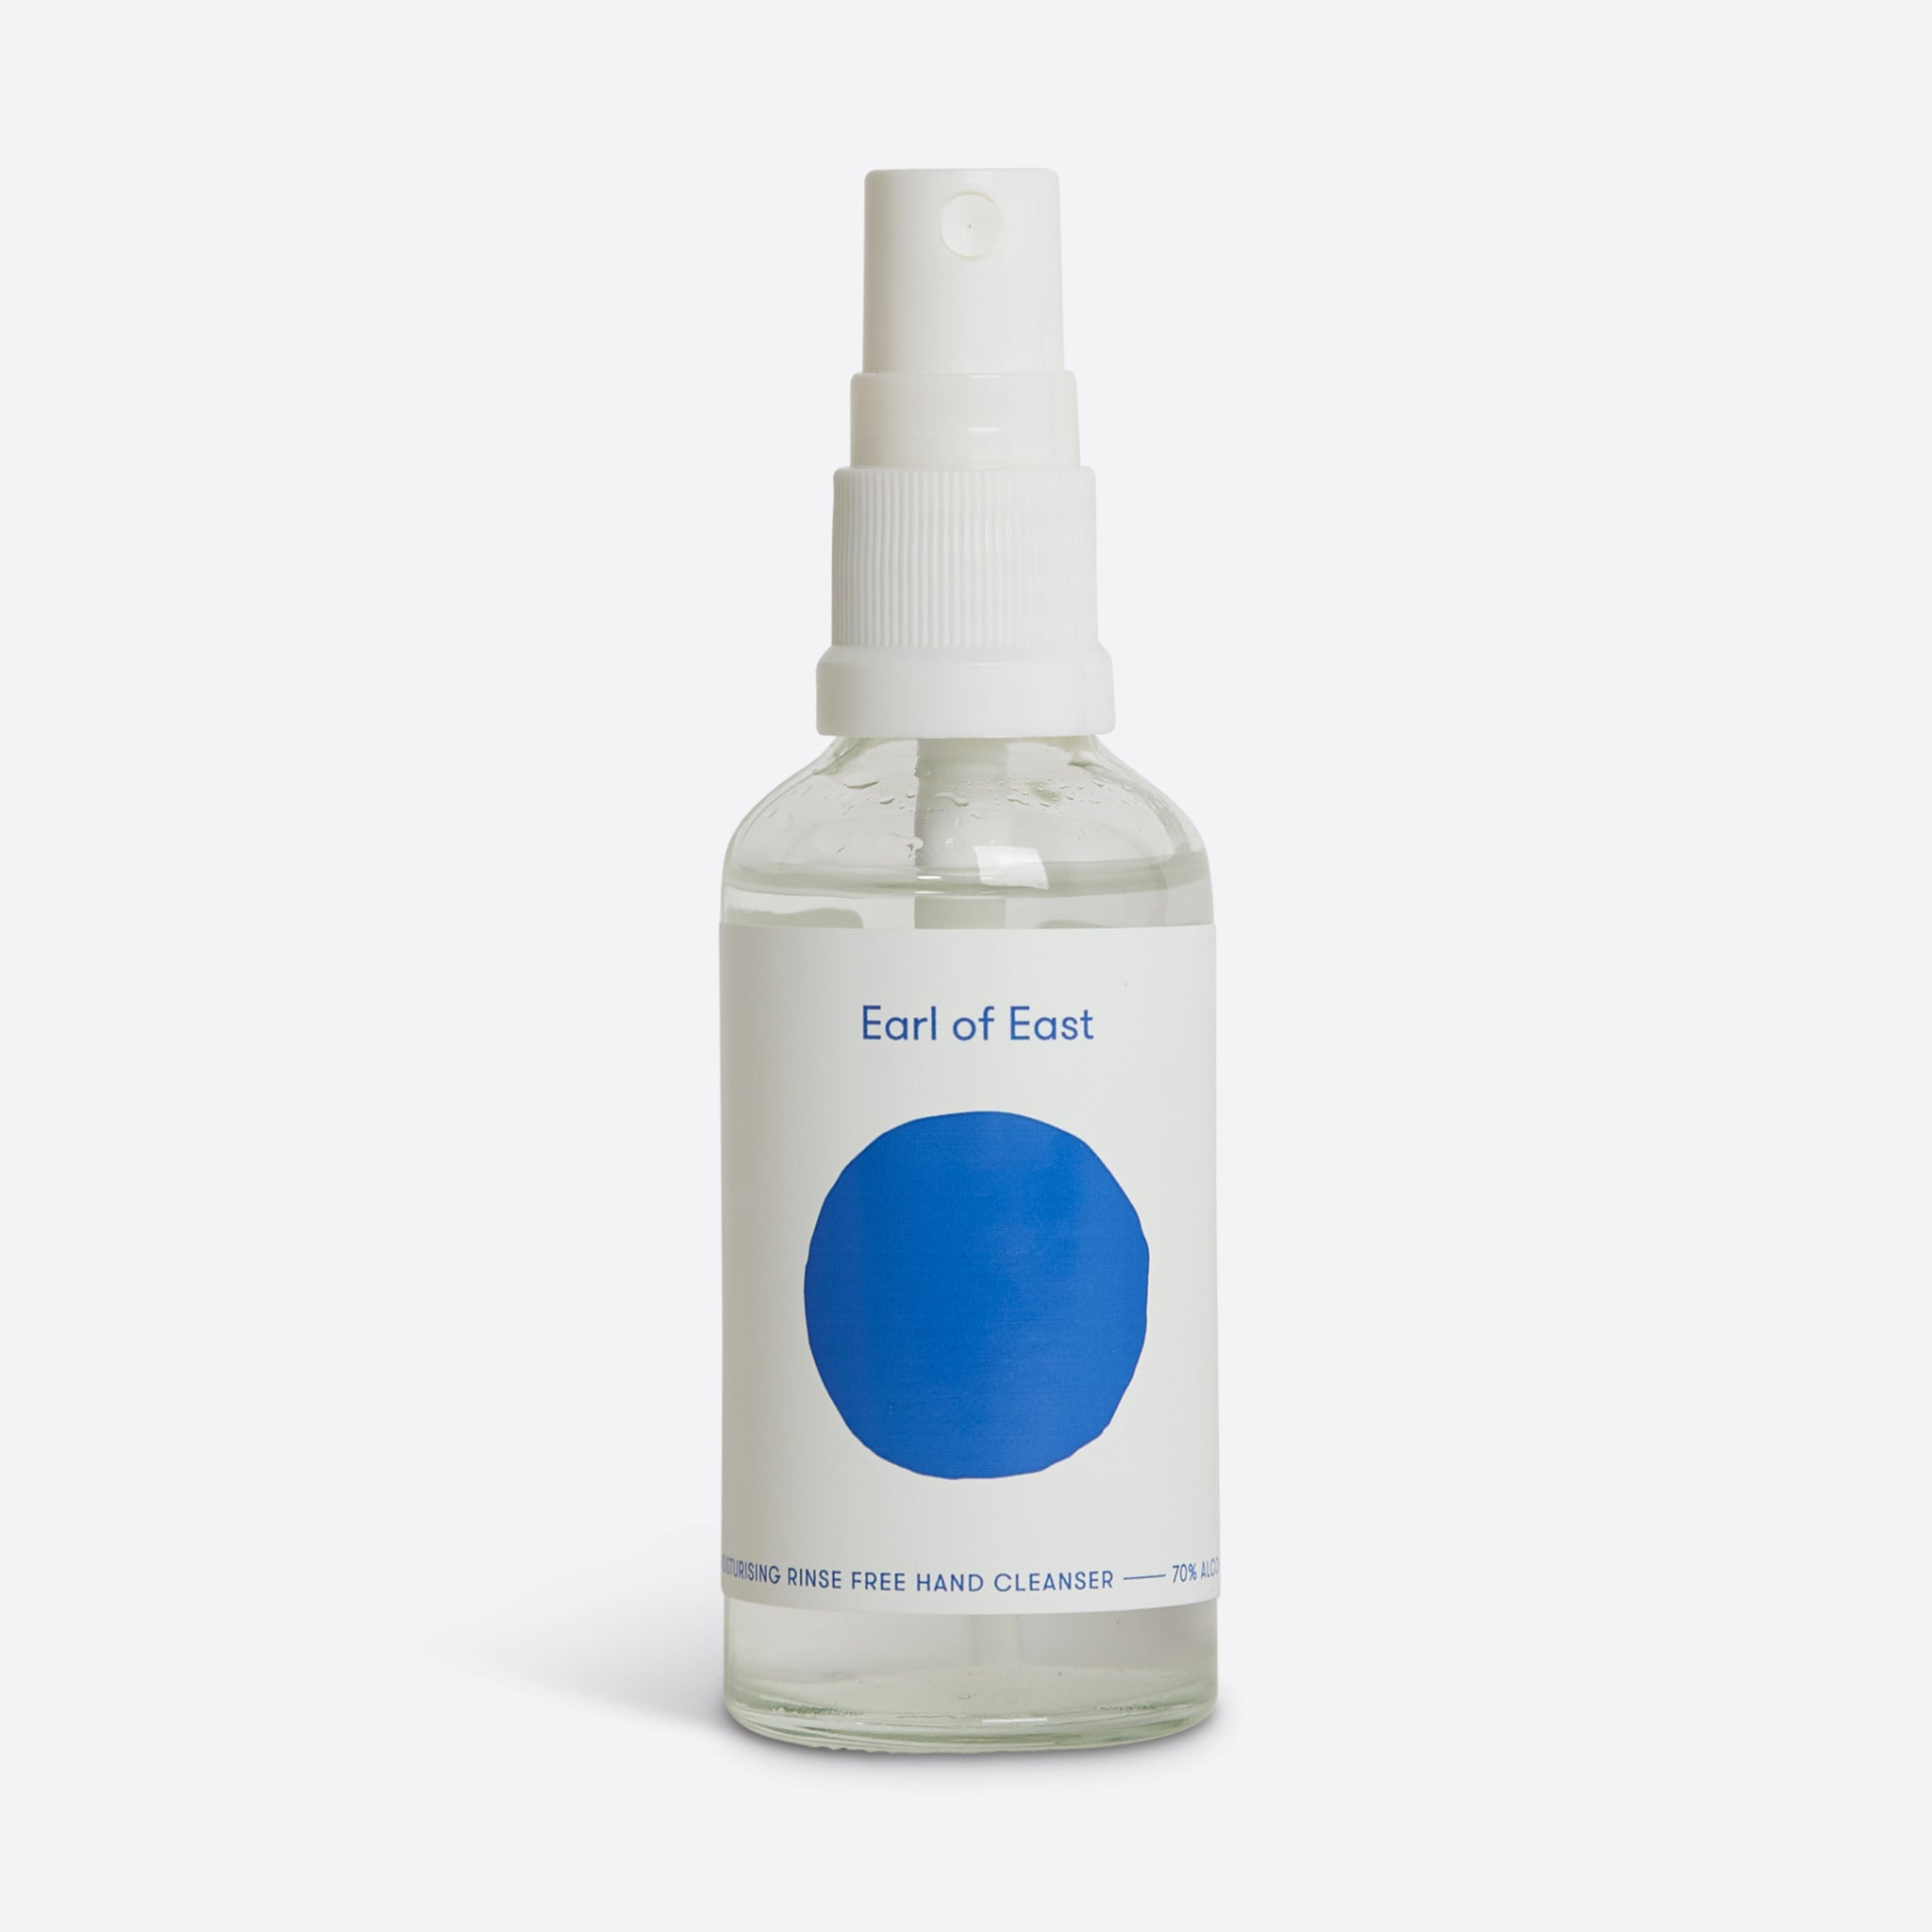 Earl of East Rinse-Free Hand Cleanser